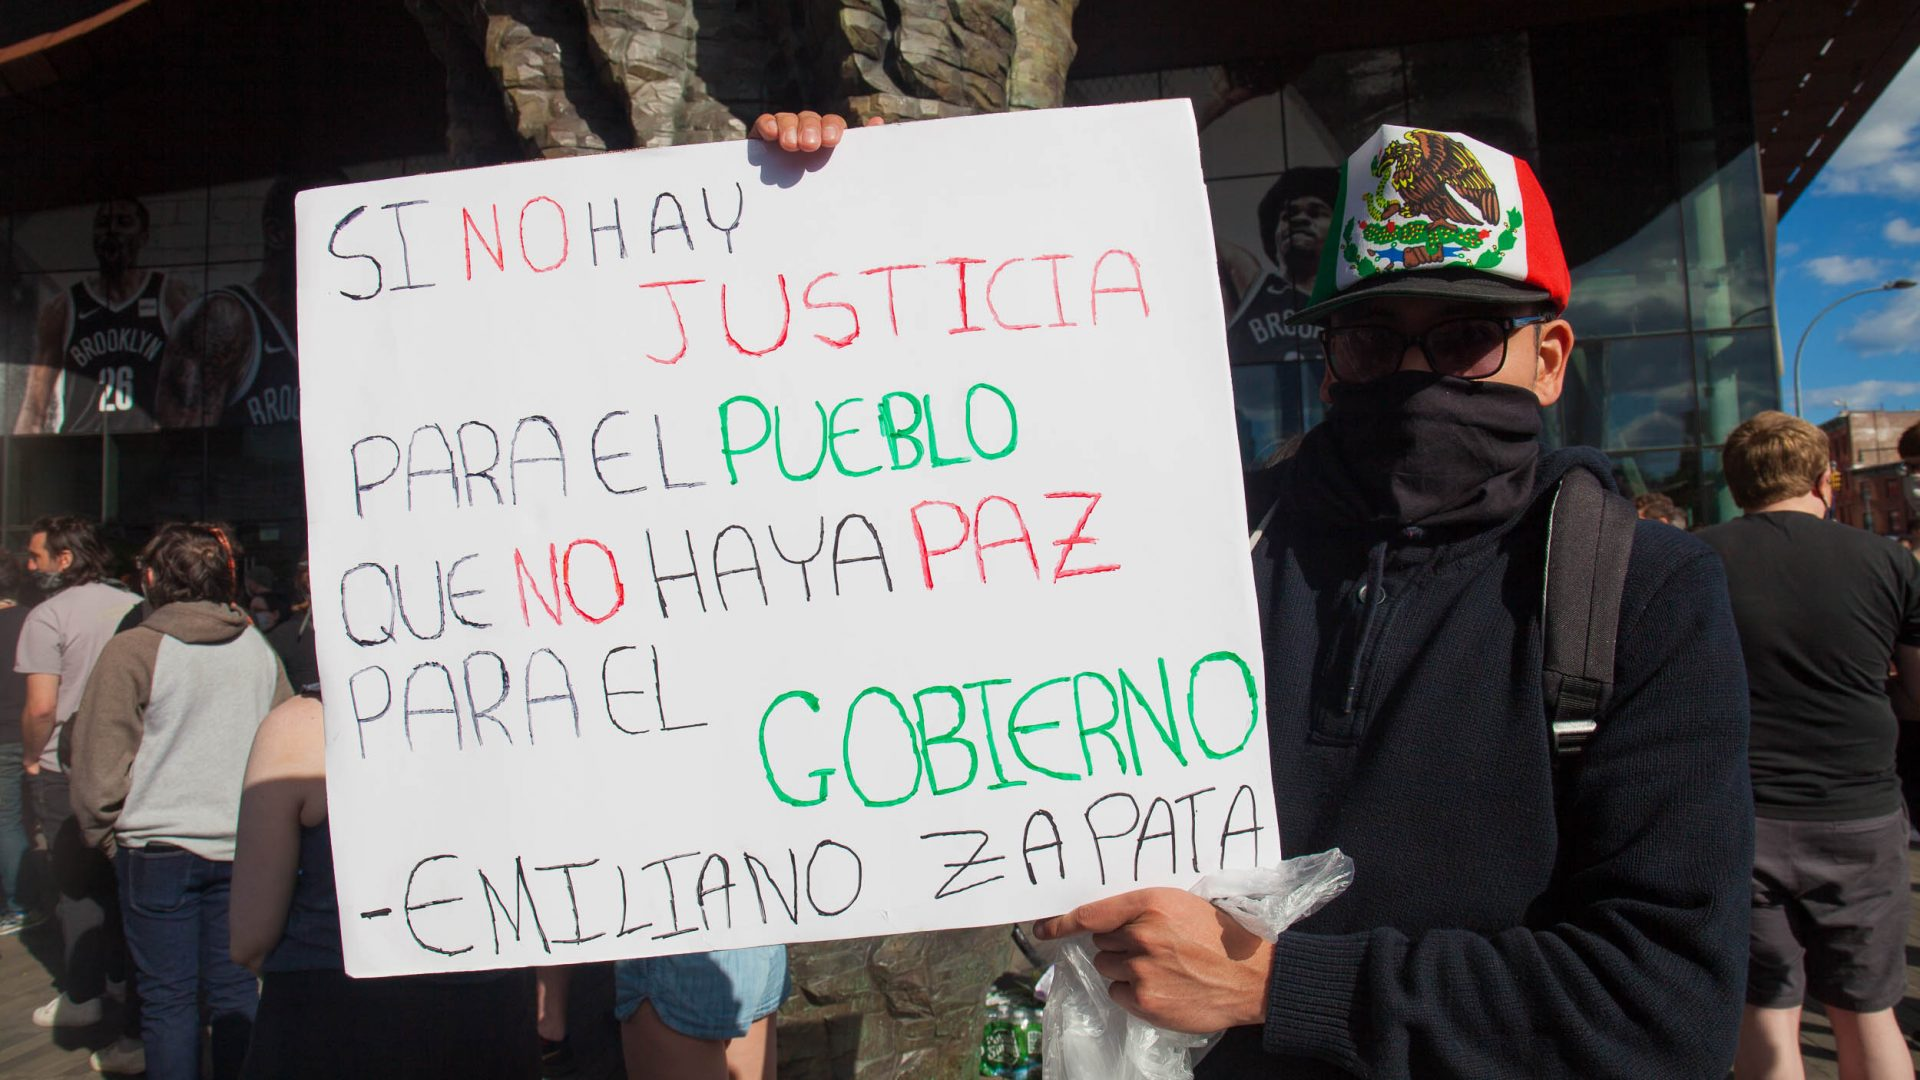 """Sunday, May 31, 2020. New York City - Rally at Barclays Center, Brooklyn to demand justice for George Floyd, to support Black Lives Matter and to demand police accountability. The sign says, """"Si no hay justicia para el pueblo, que no haya paz para el gobierno .""""-Emiliano Zapata (If there is no justice for the people, there is no peace for the government.""""_Emiliano Zapata). Photo by Javier Soriano/www.JavierSoriano.com"""